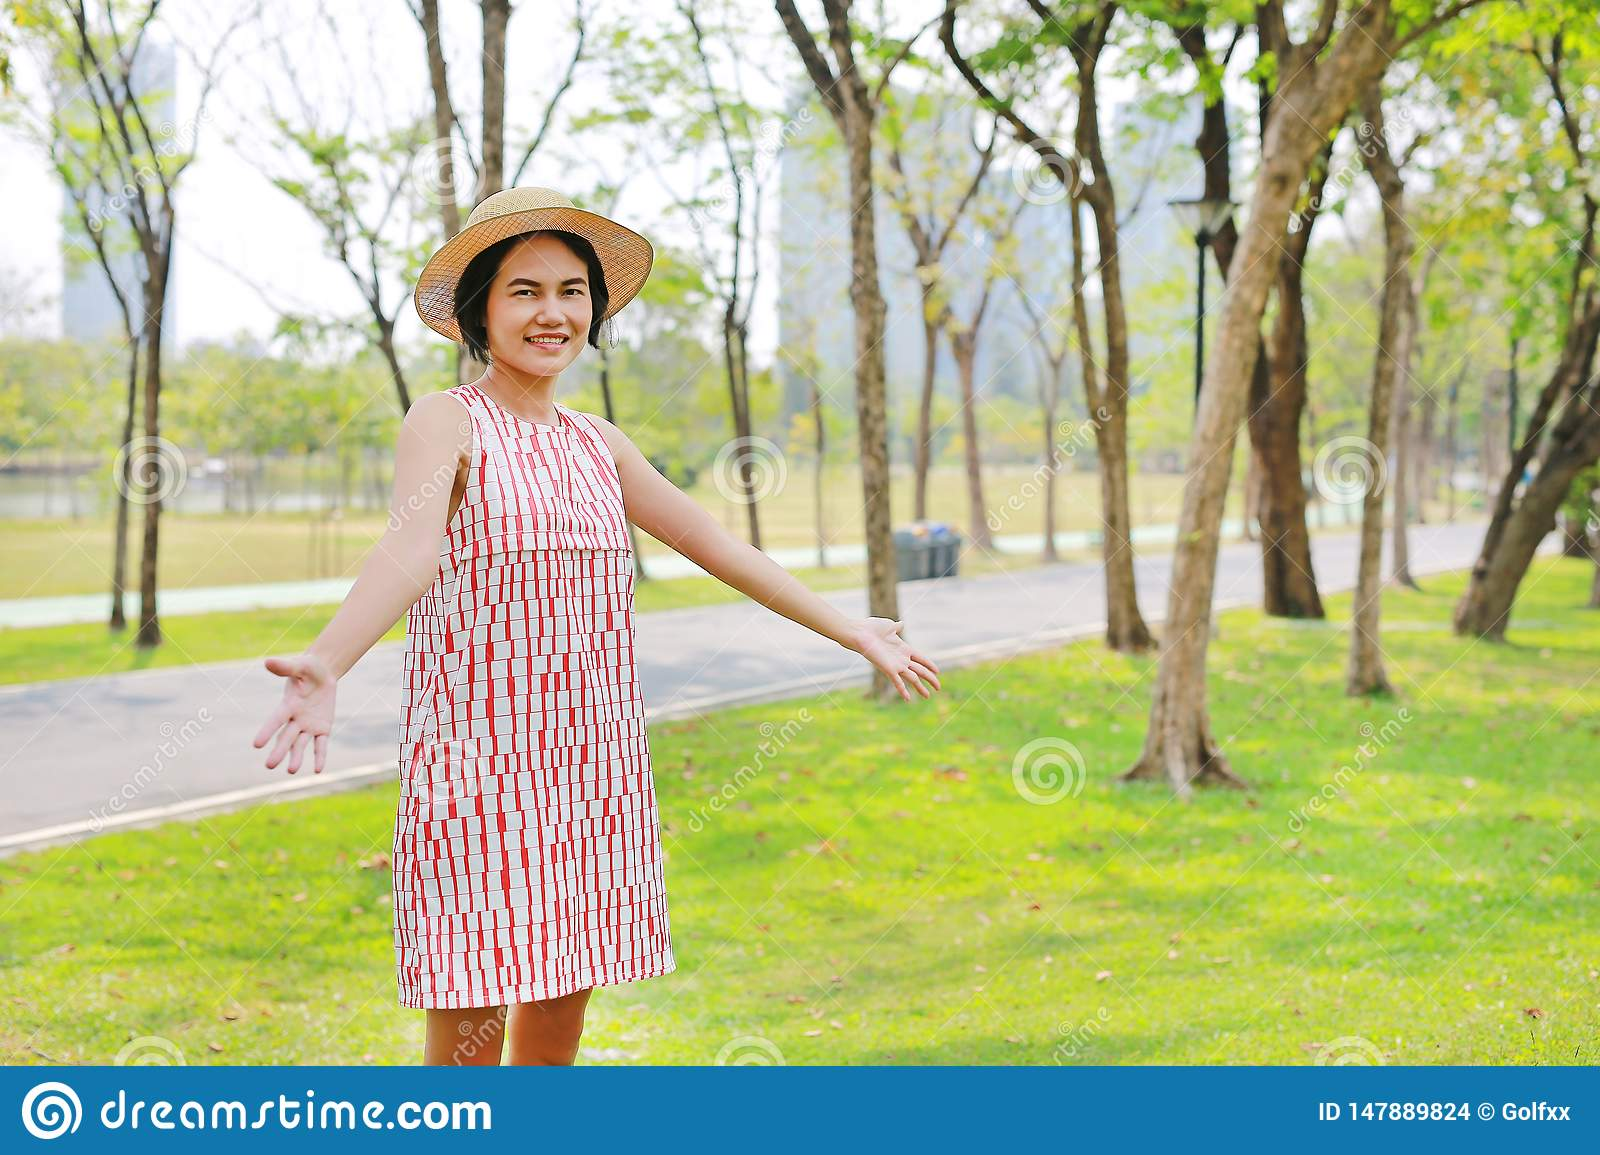 Young Asian woman raising arms and smile in nature park